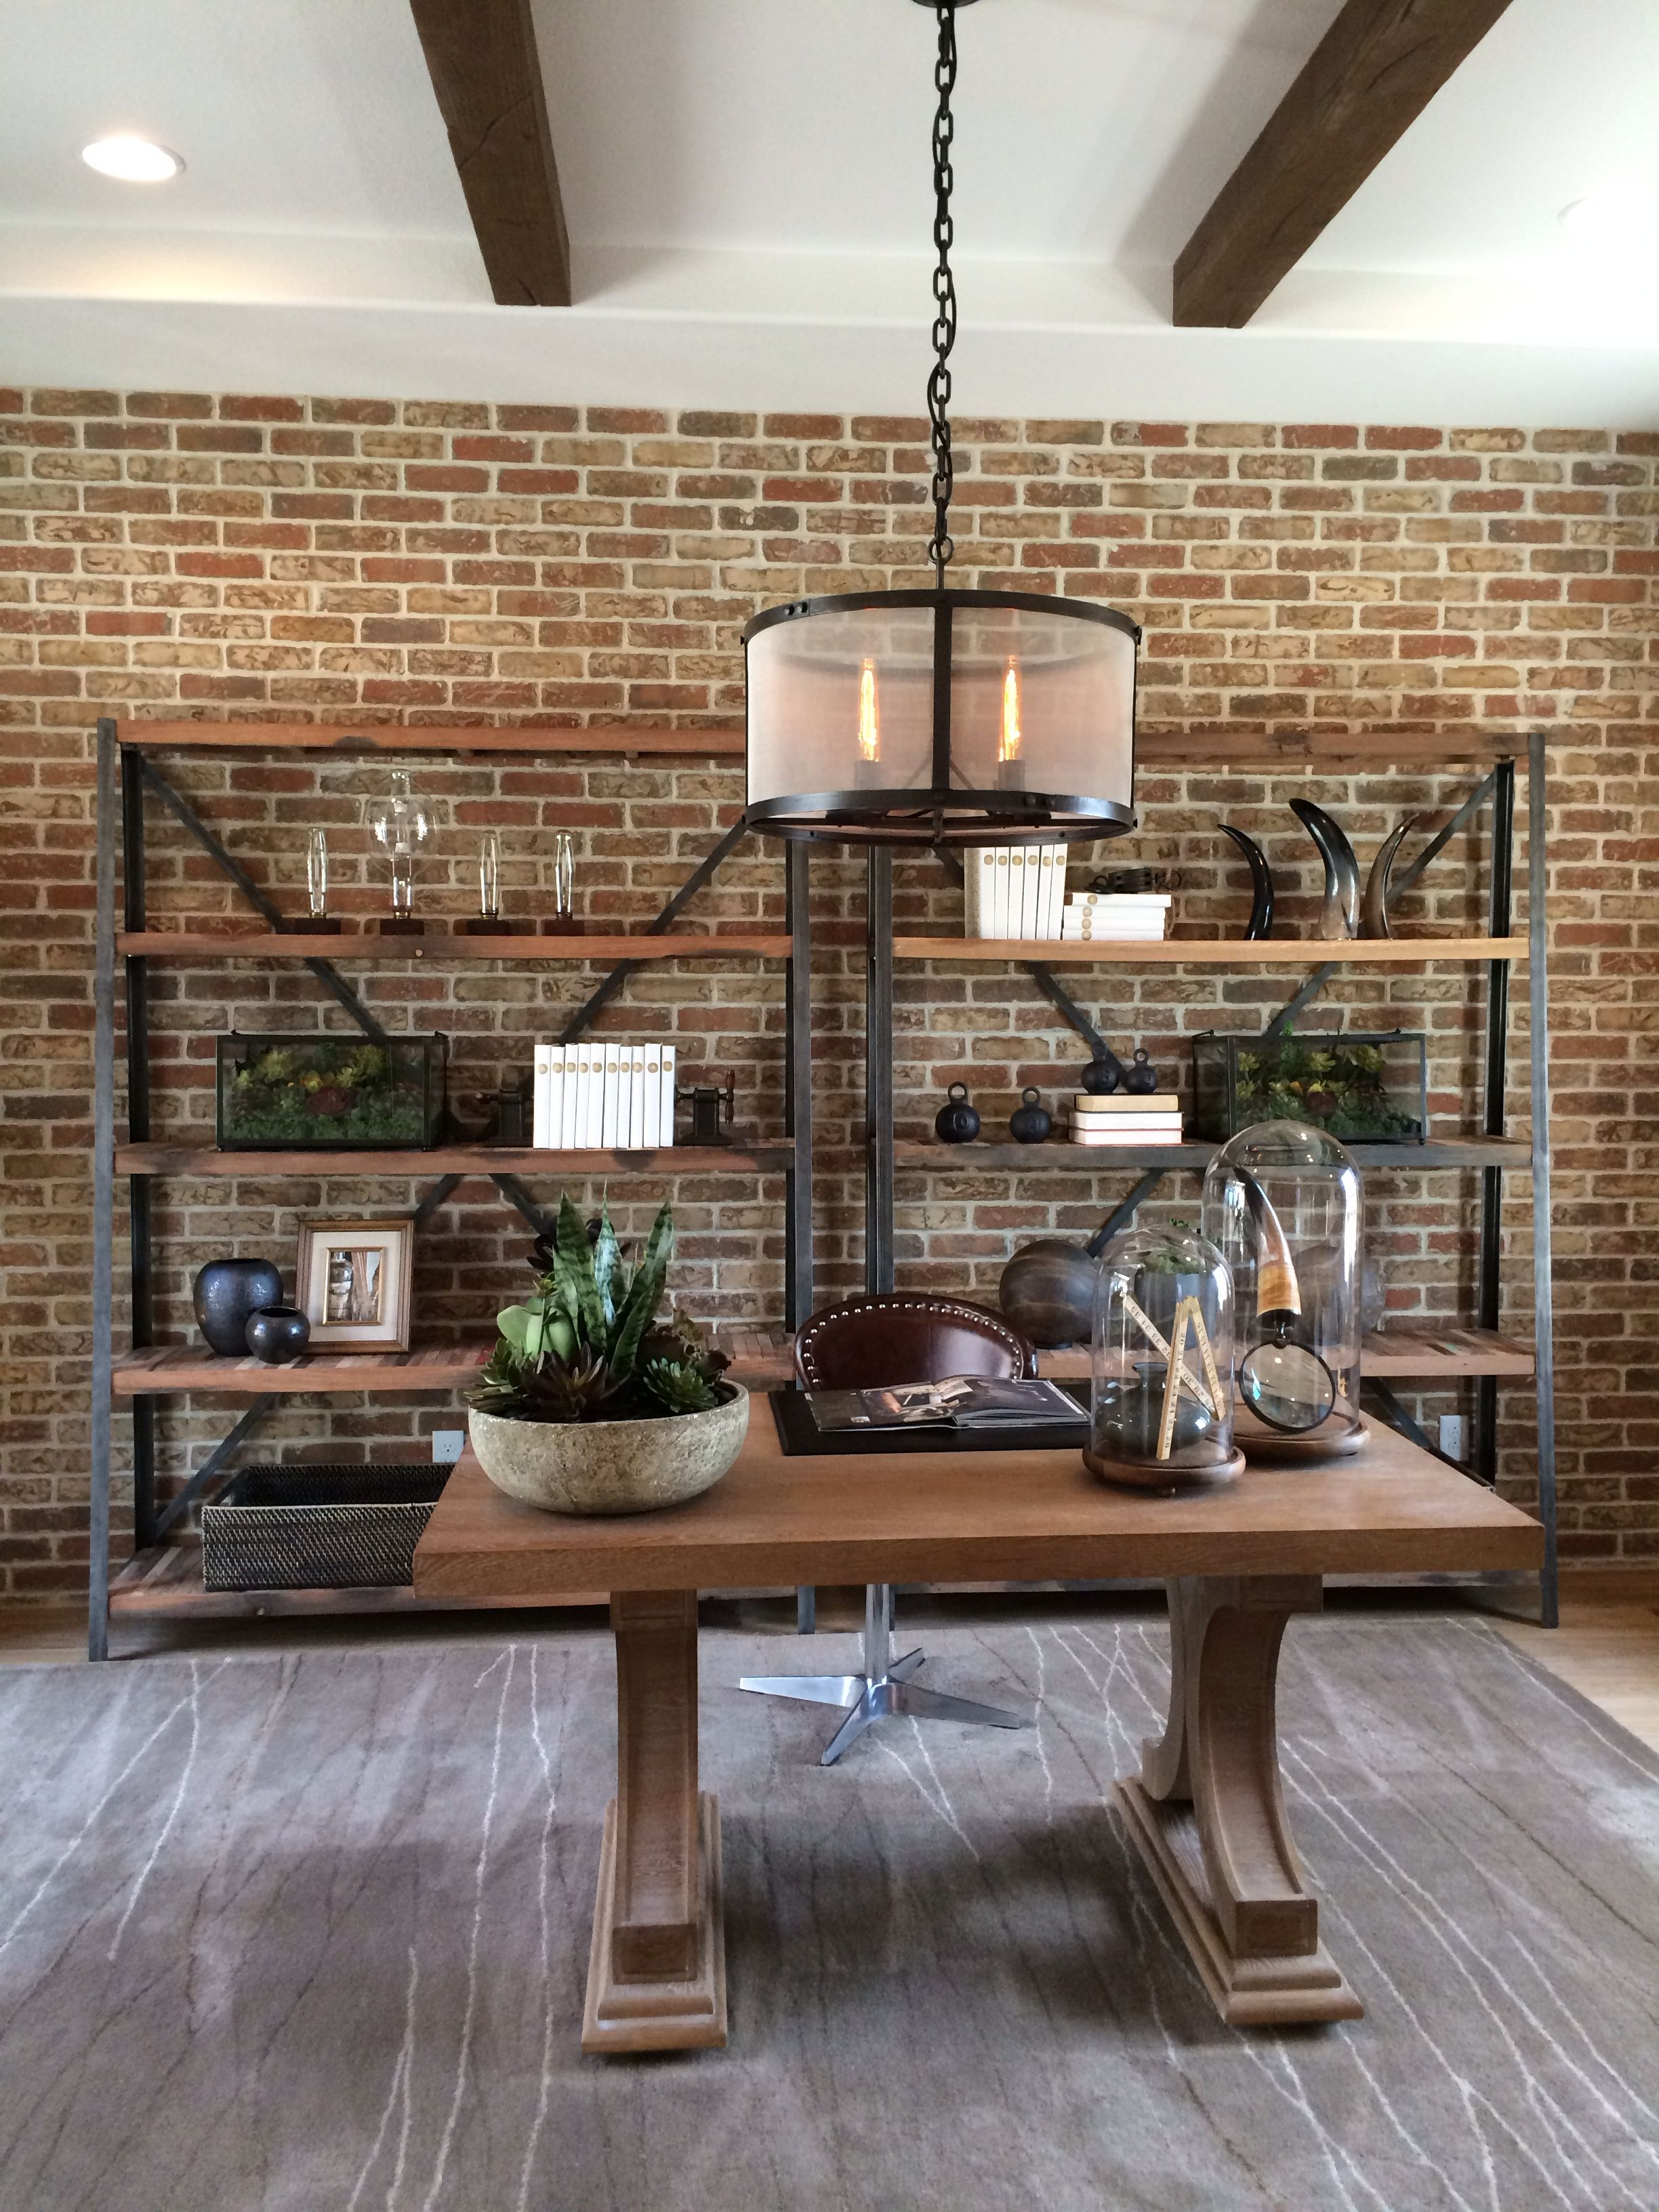 Meuble Coppin Feature Wall Home Ideas Pinterest